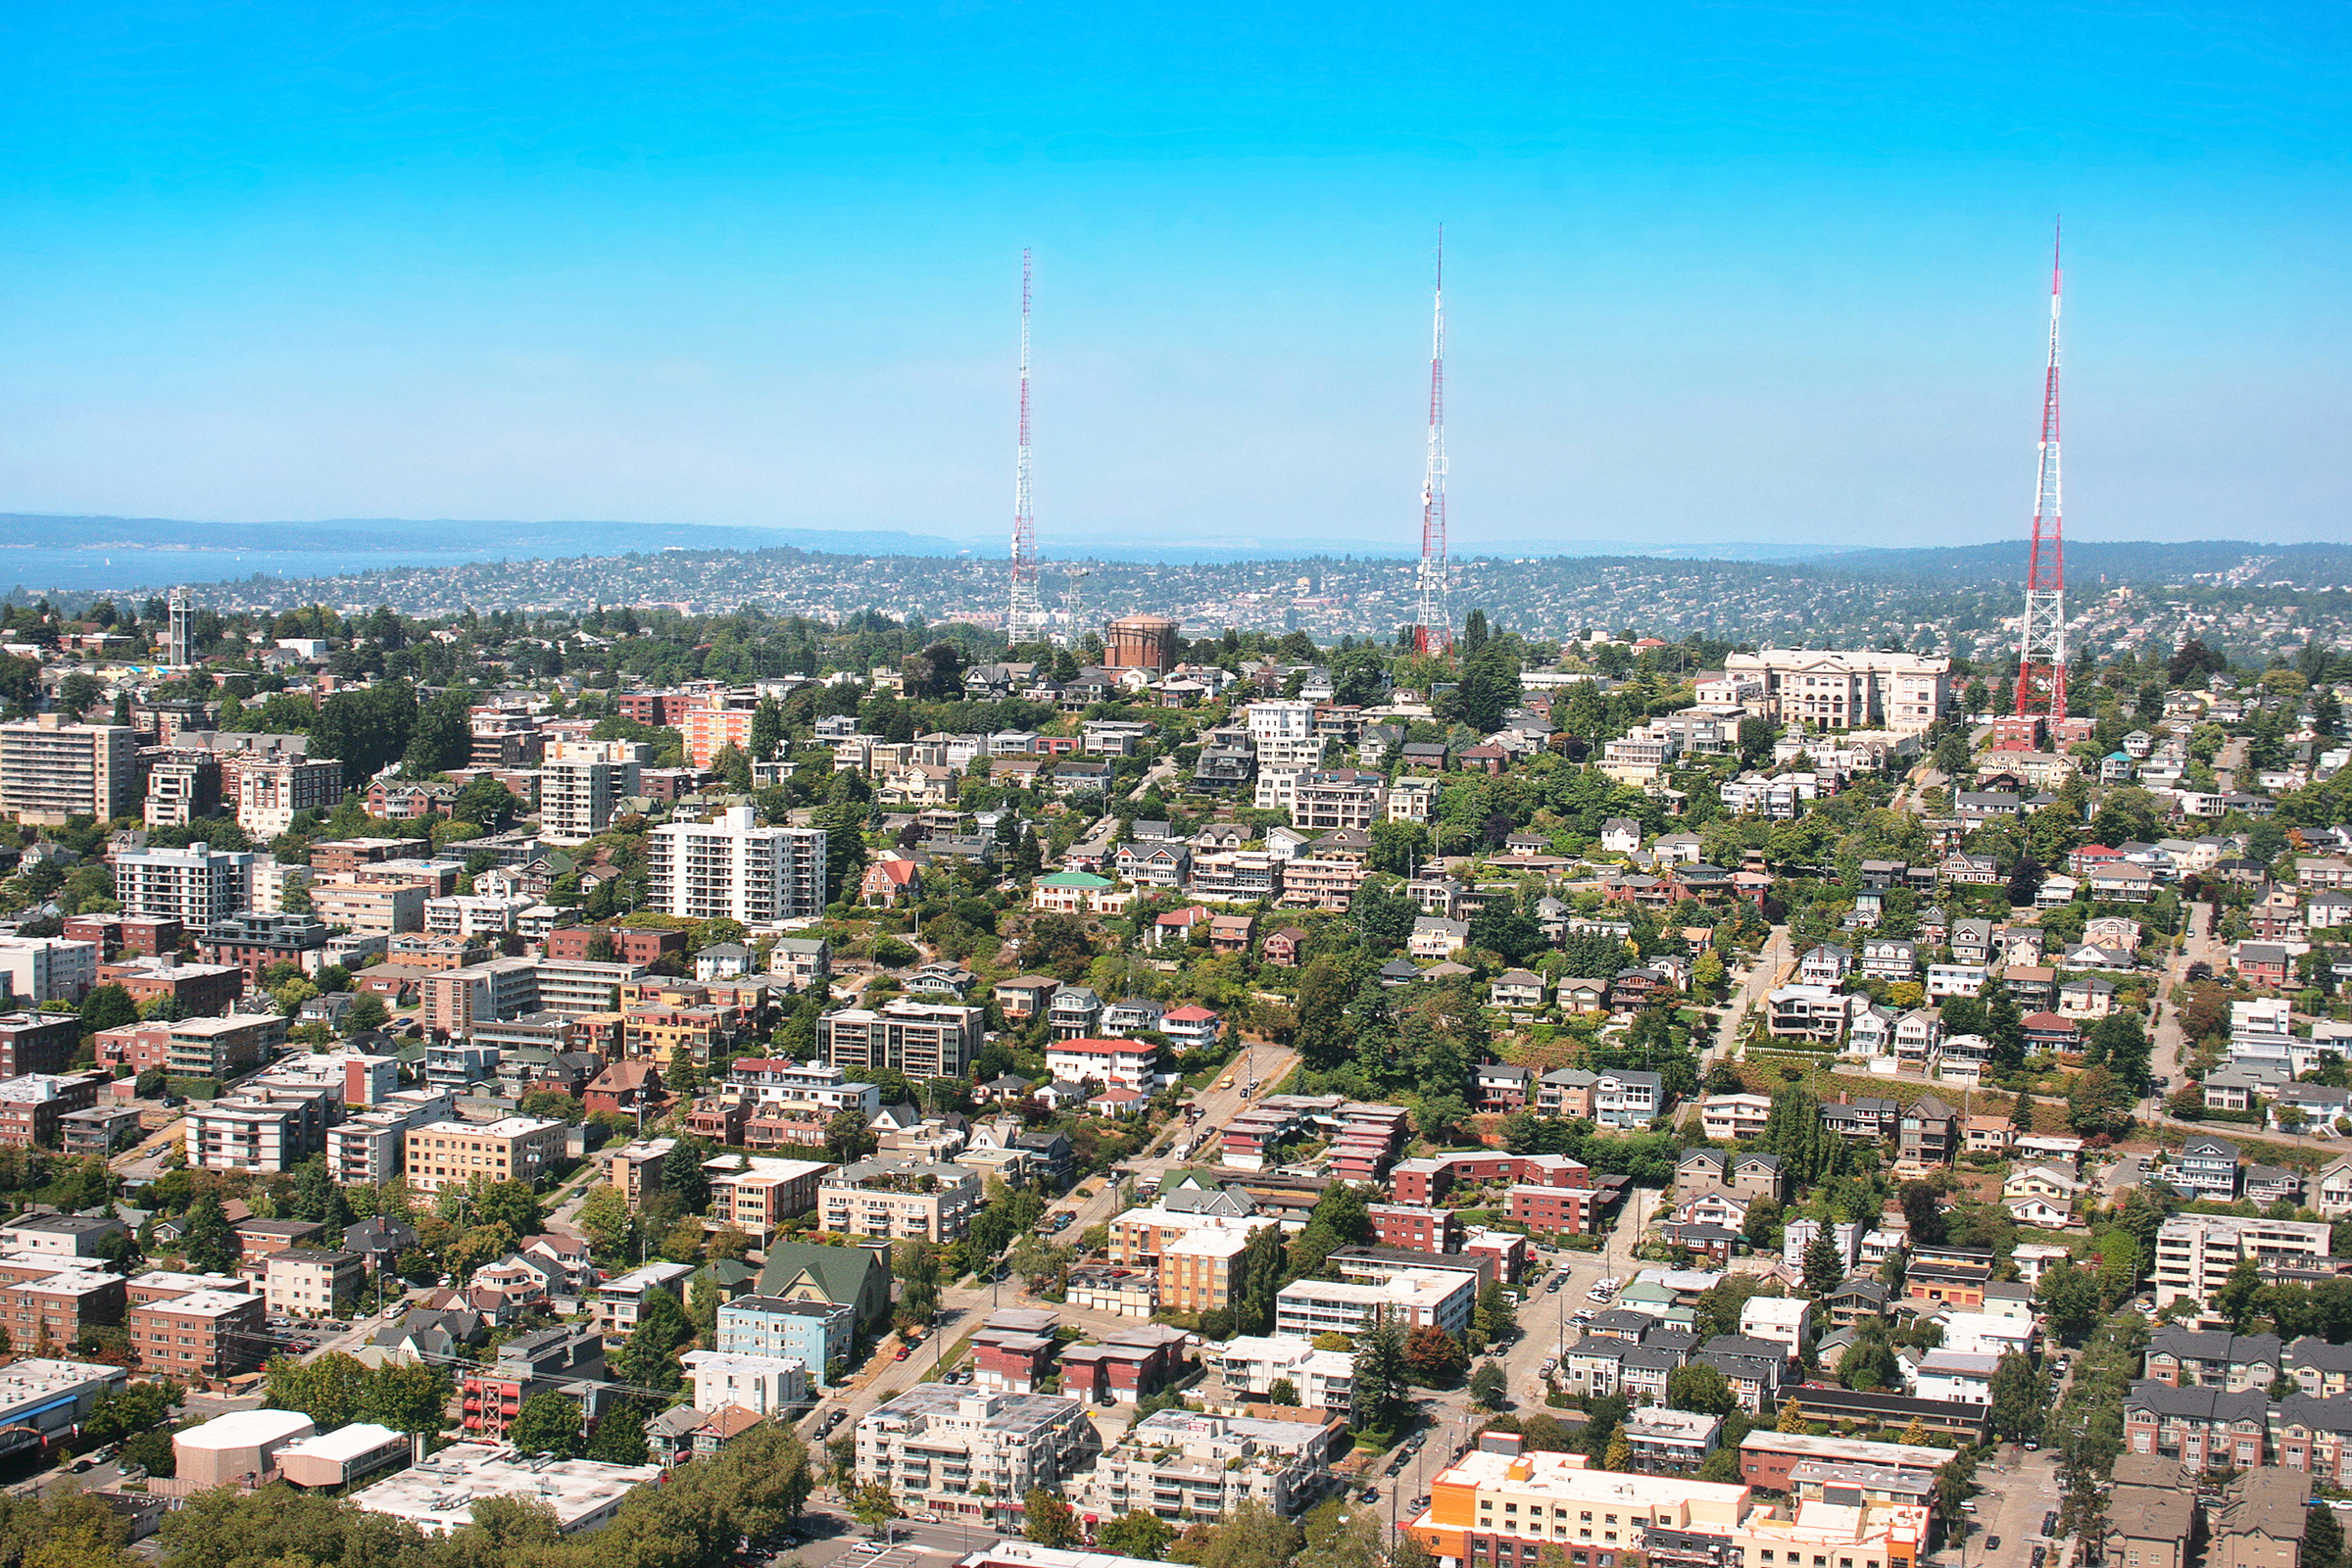 Queen Anne Hill neighborhood in Seattle, Washington